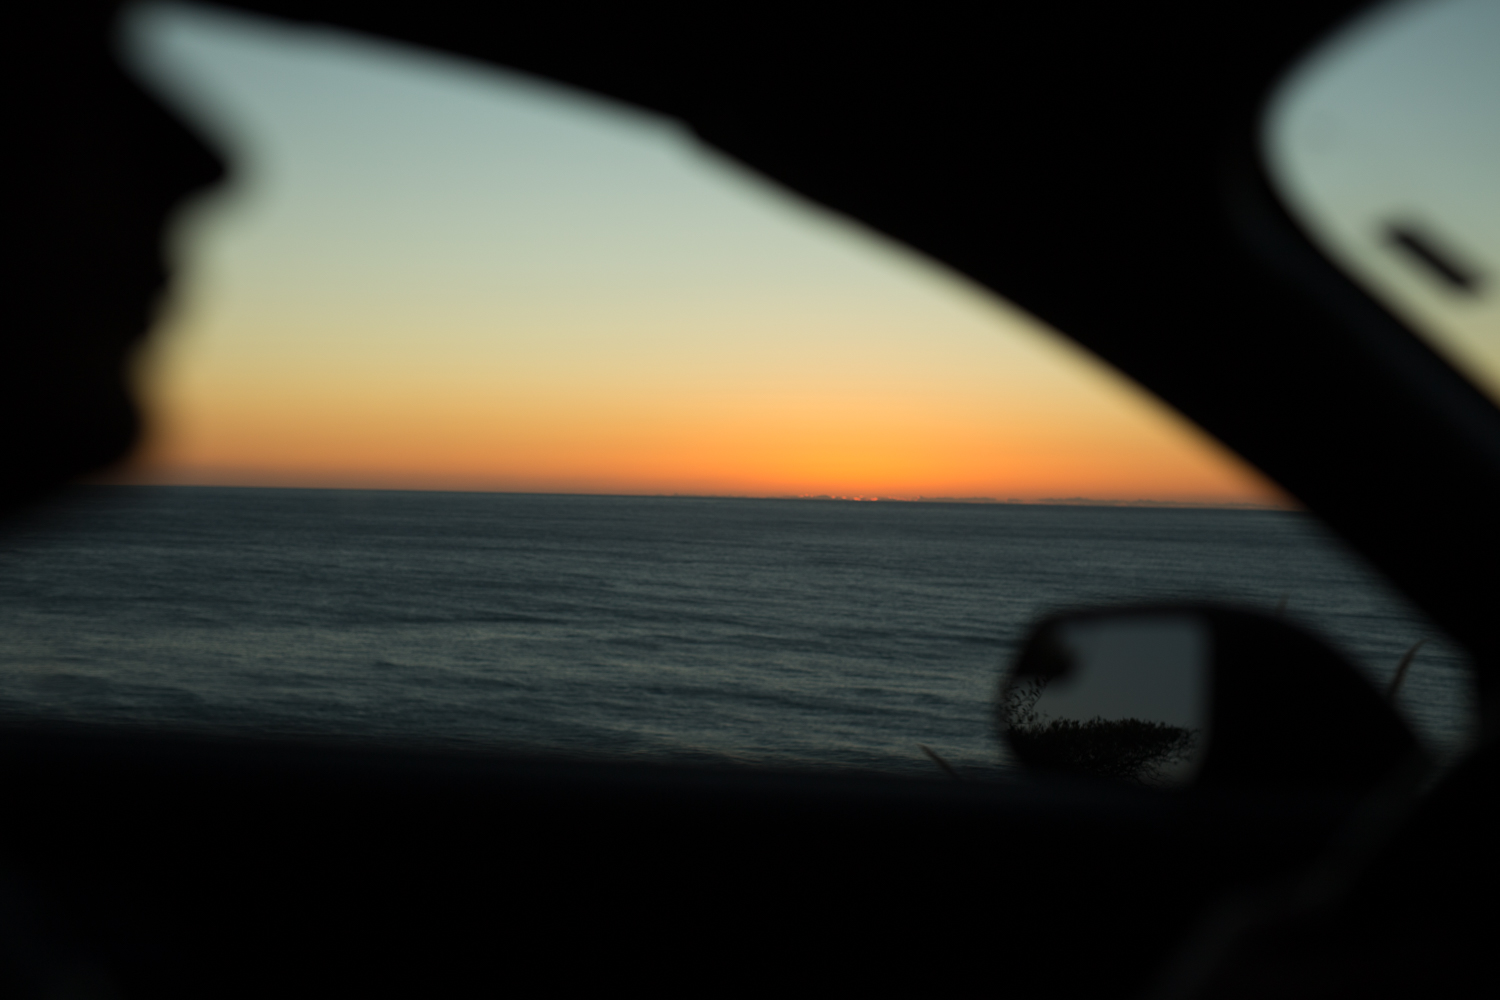 california-road-trip-route-1-katie-donnelly-photography-15.jpg